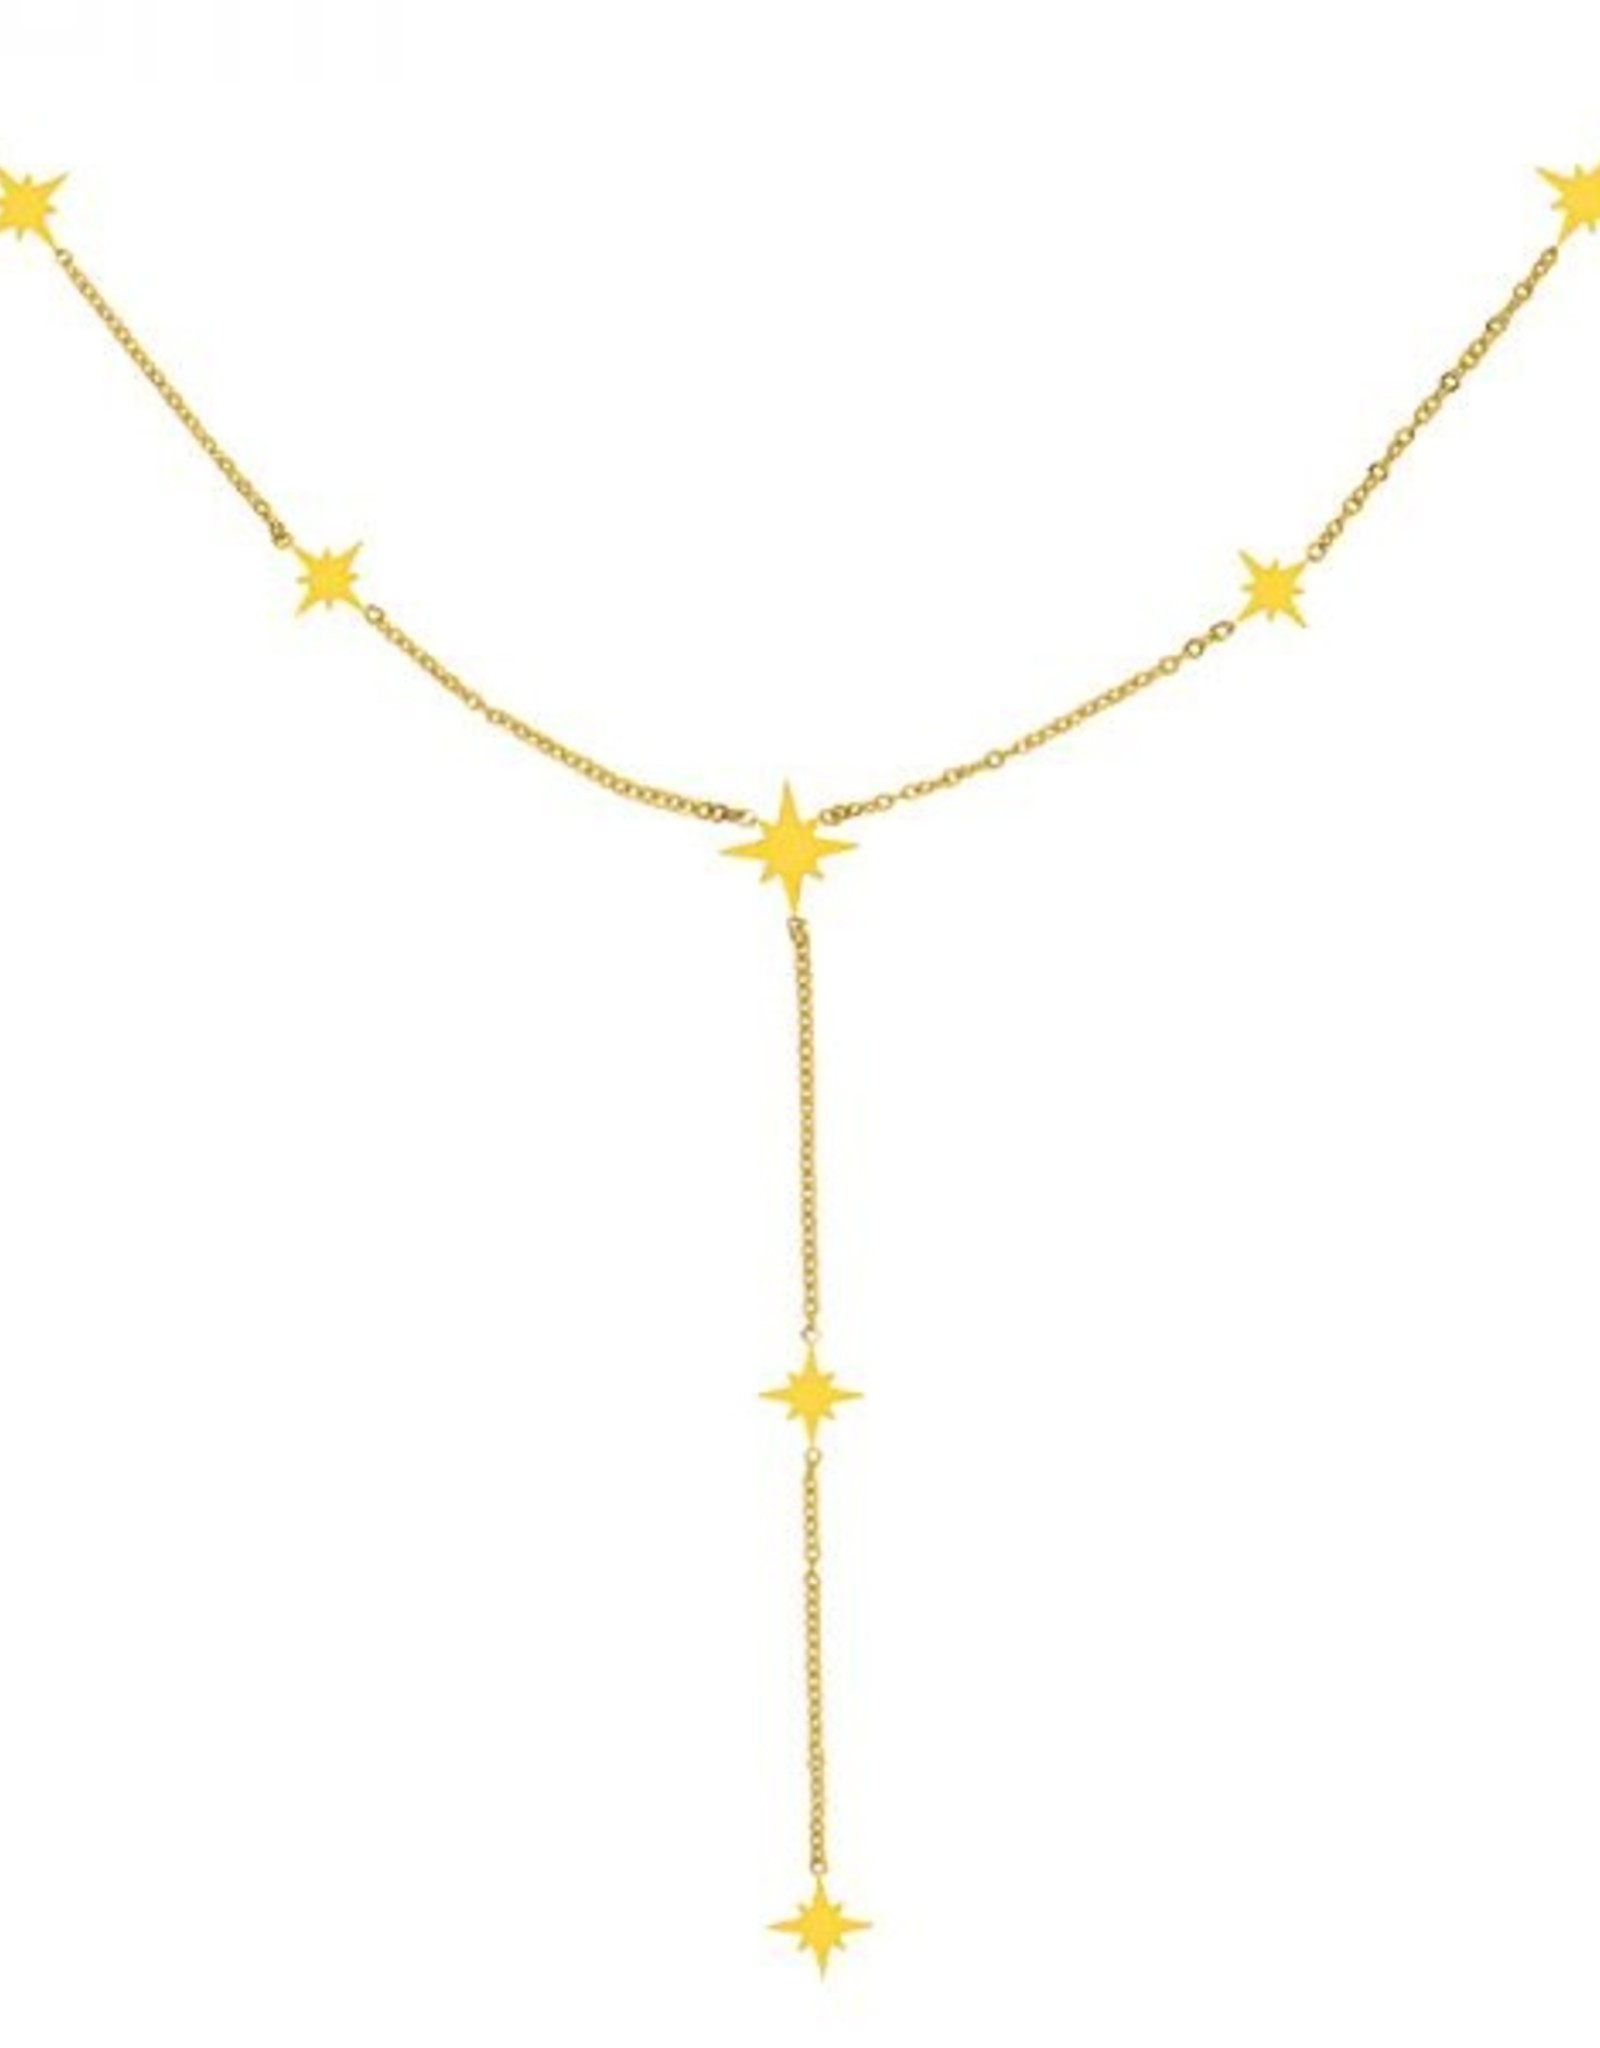 Necklace starry gold